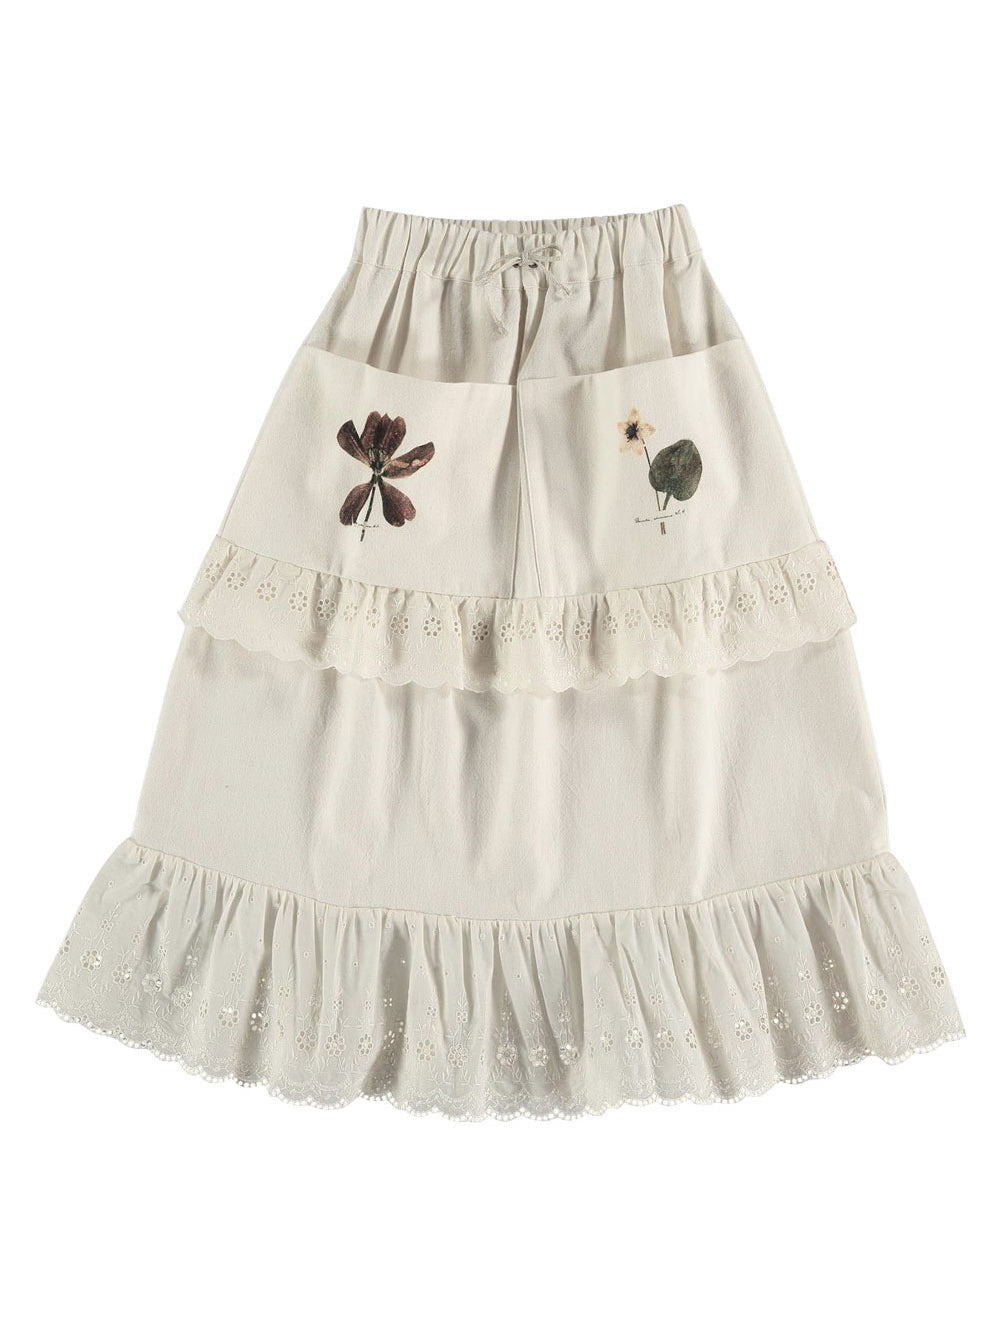 Herbarium Pocket Skirt